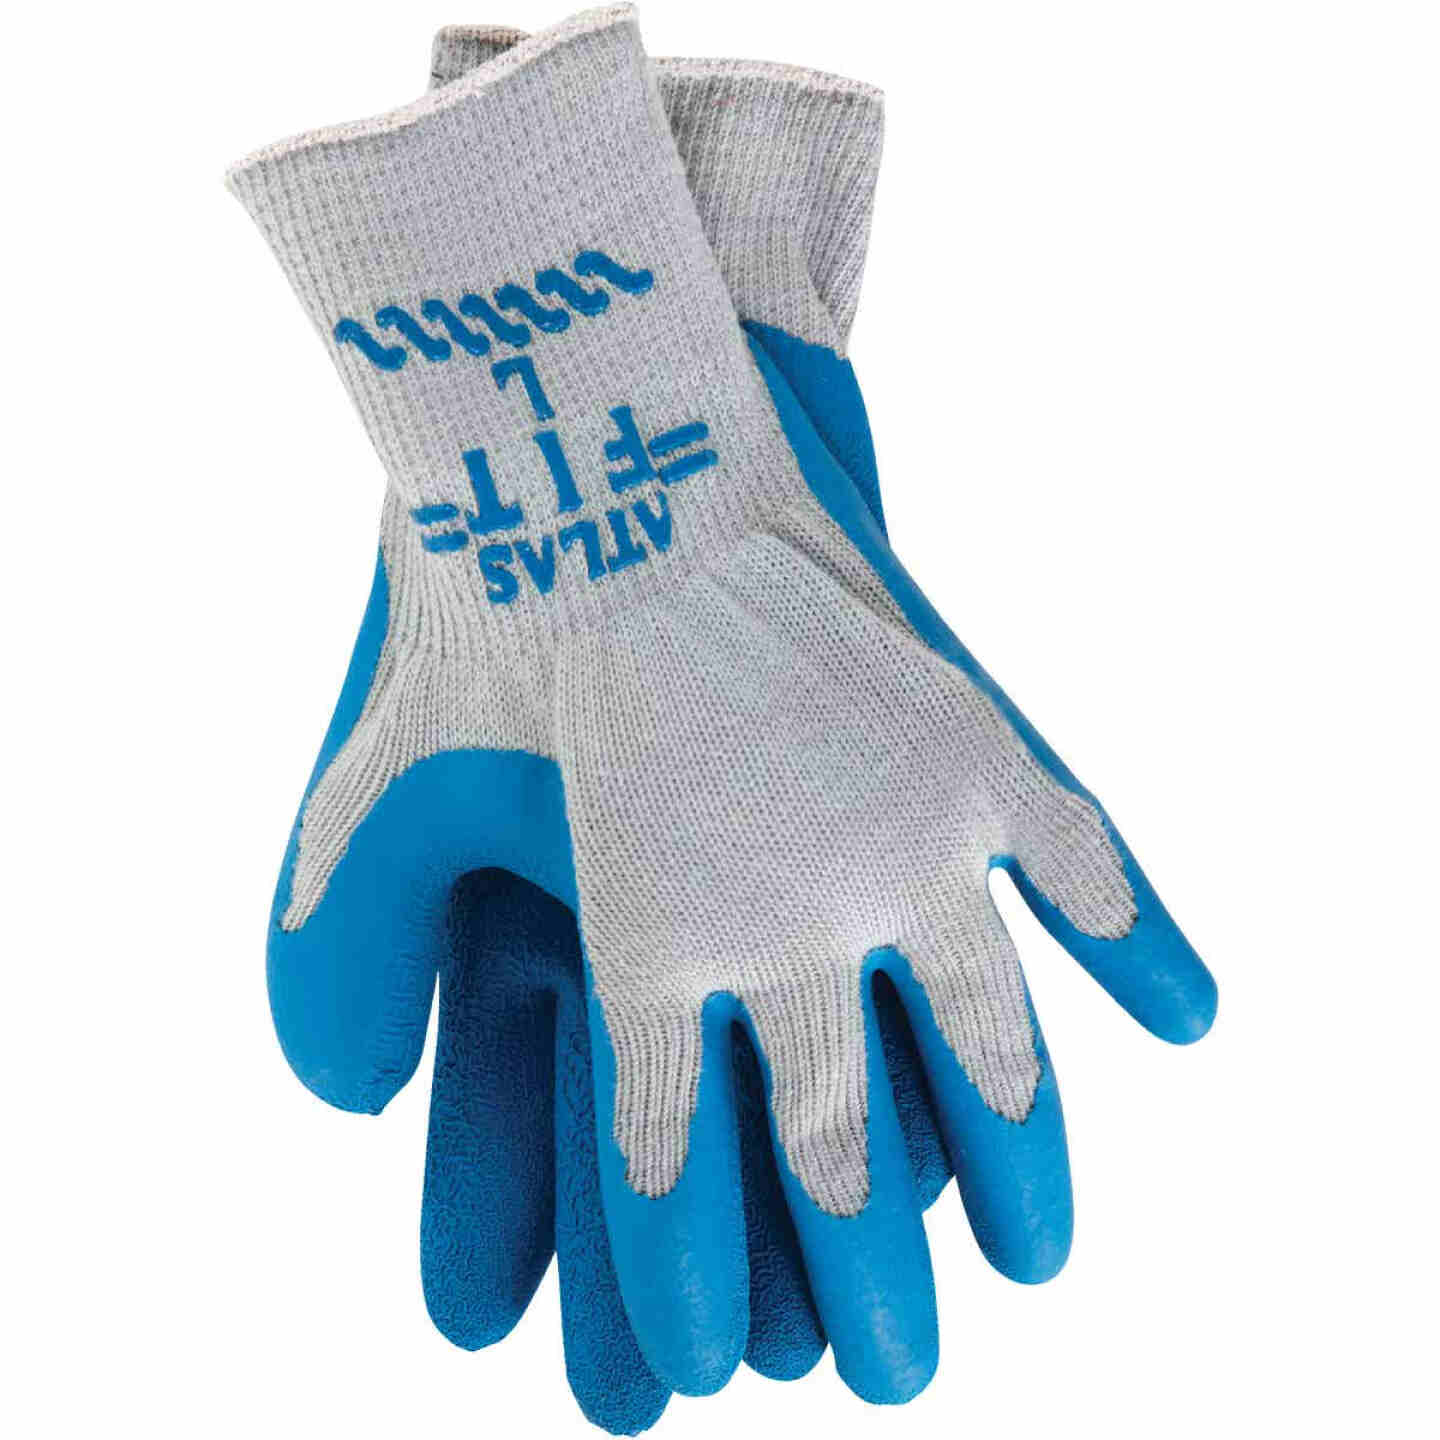 Showa Atlas Men's Small Rubber Coated Glove Image 4